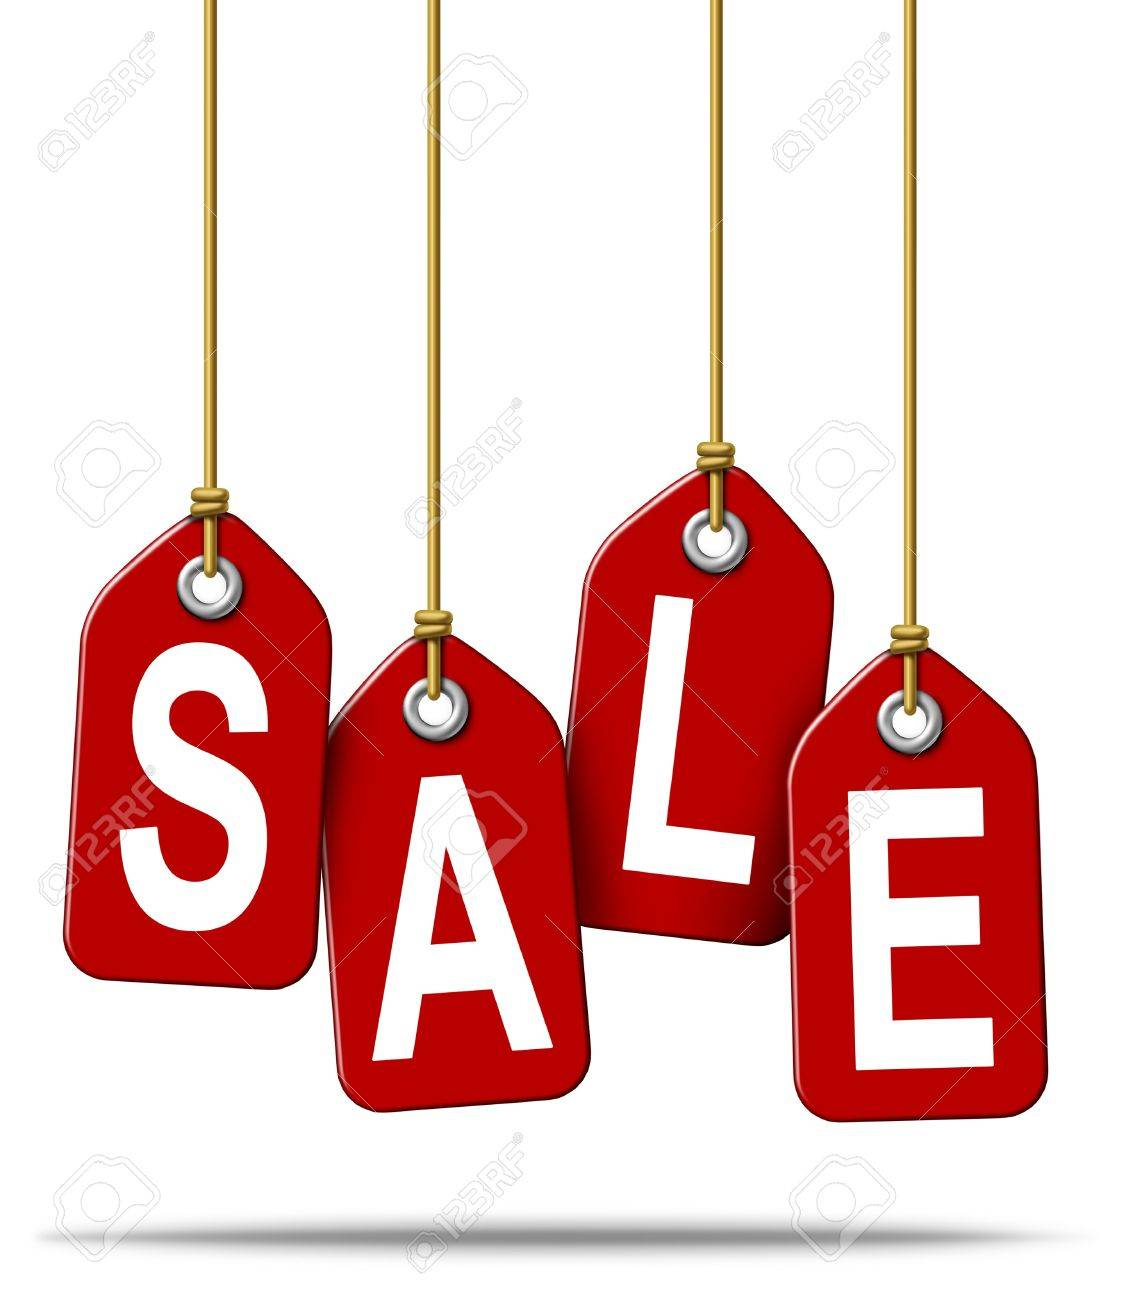 Price tag with the text sale as a red label with hanging strings tied to the paper commercial symbols of marketing and advertising discount on merchandise or services that are on special on white Stock Photo - 13070394